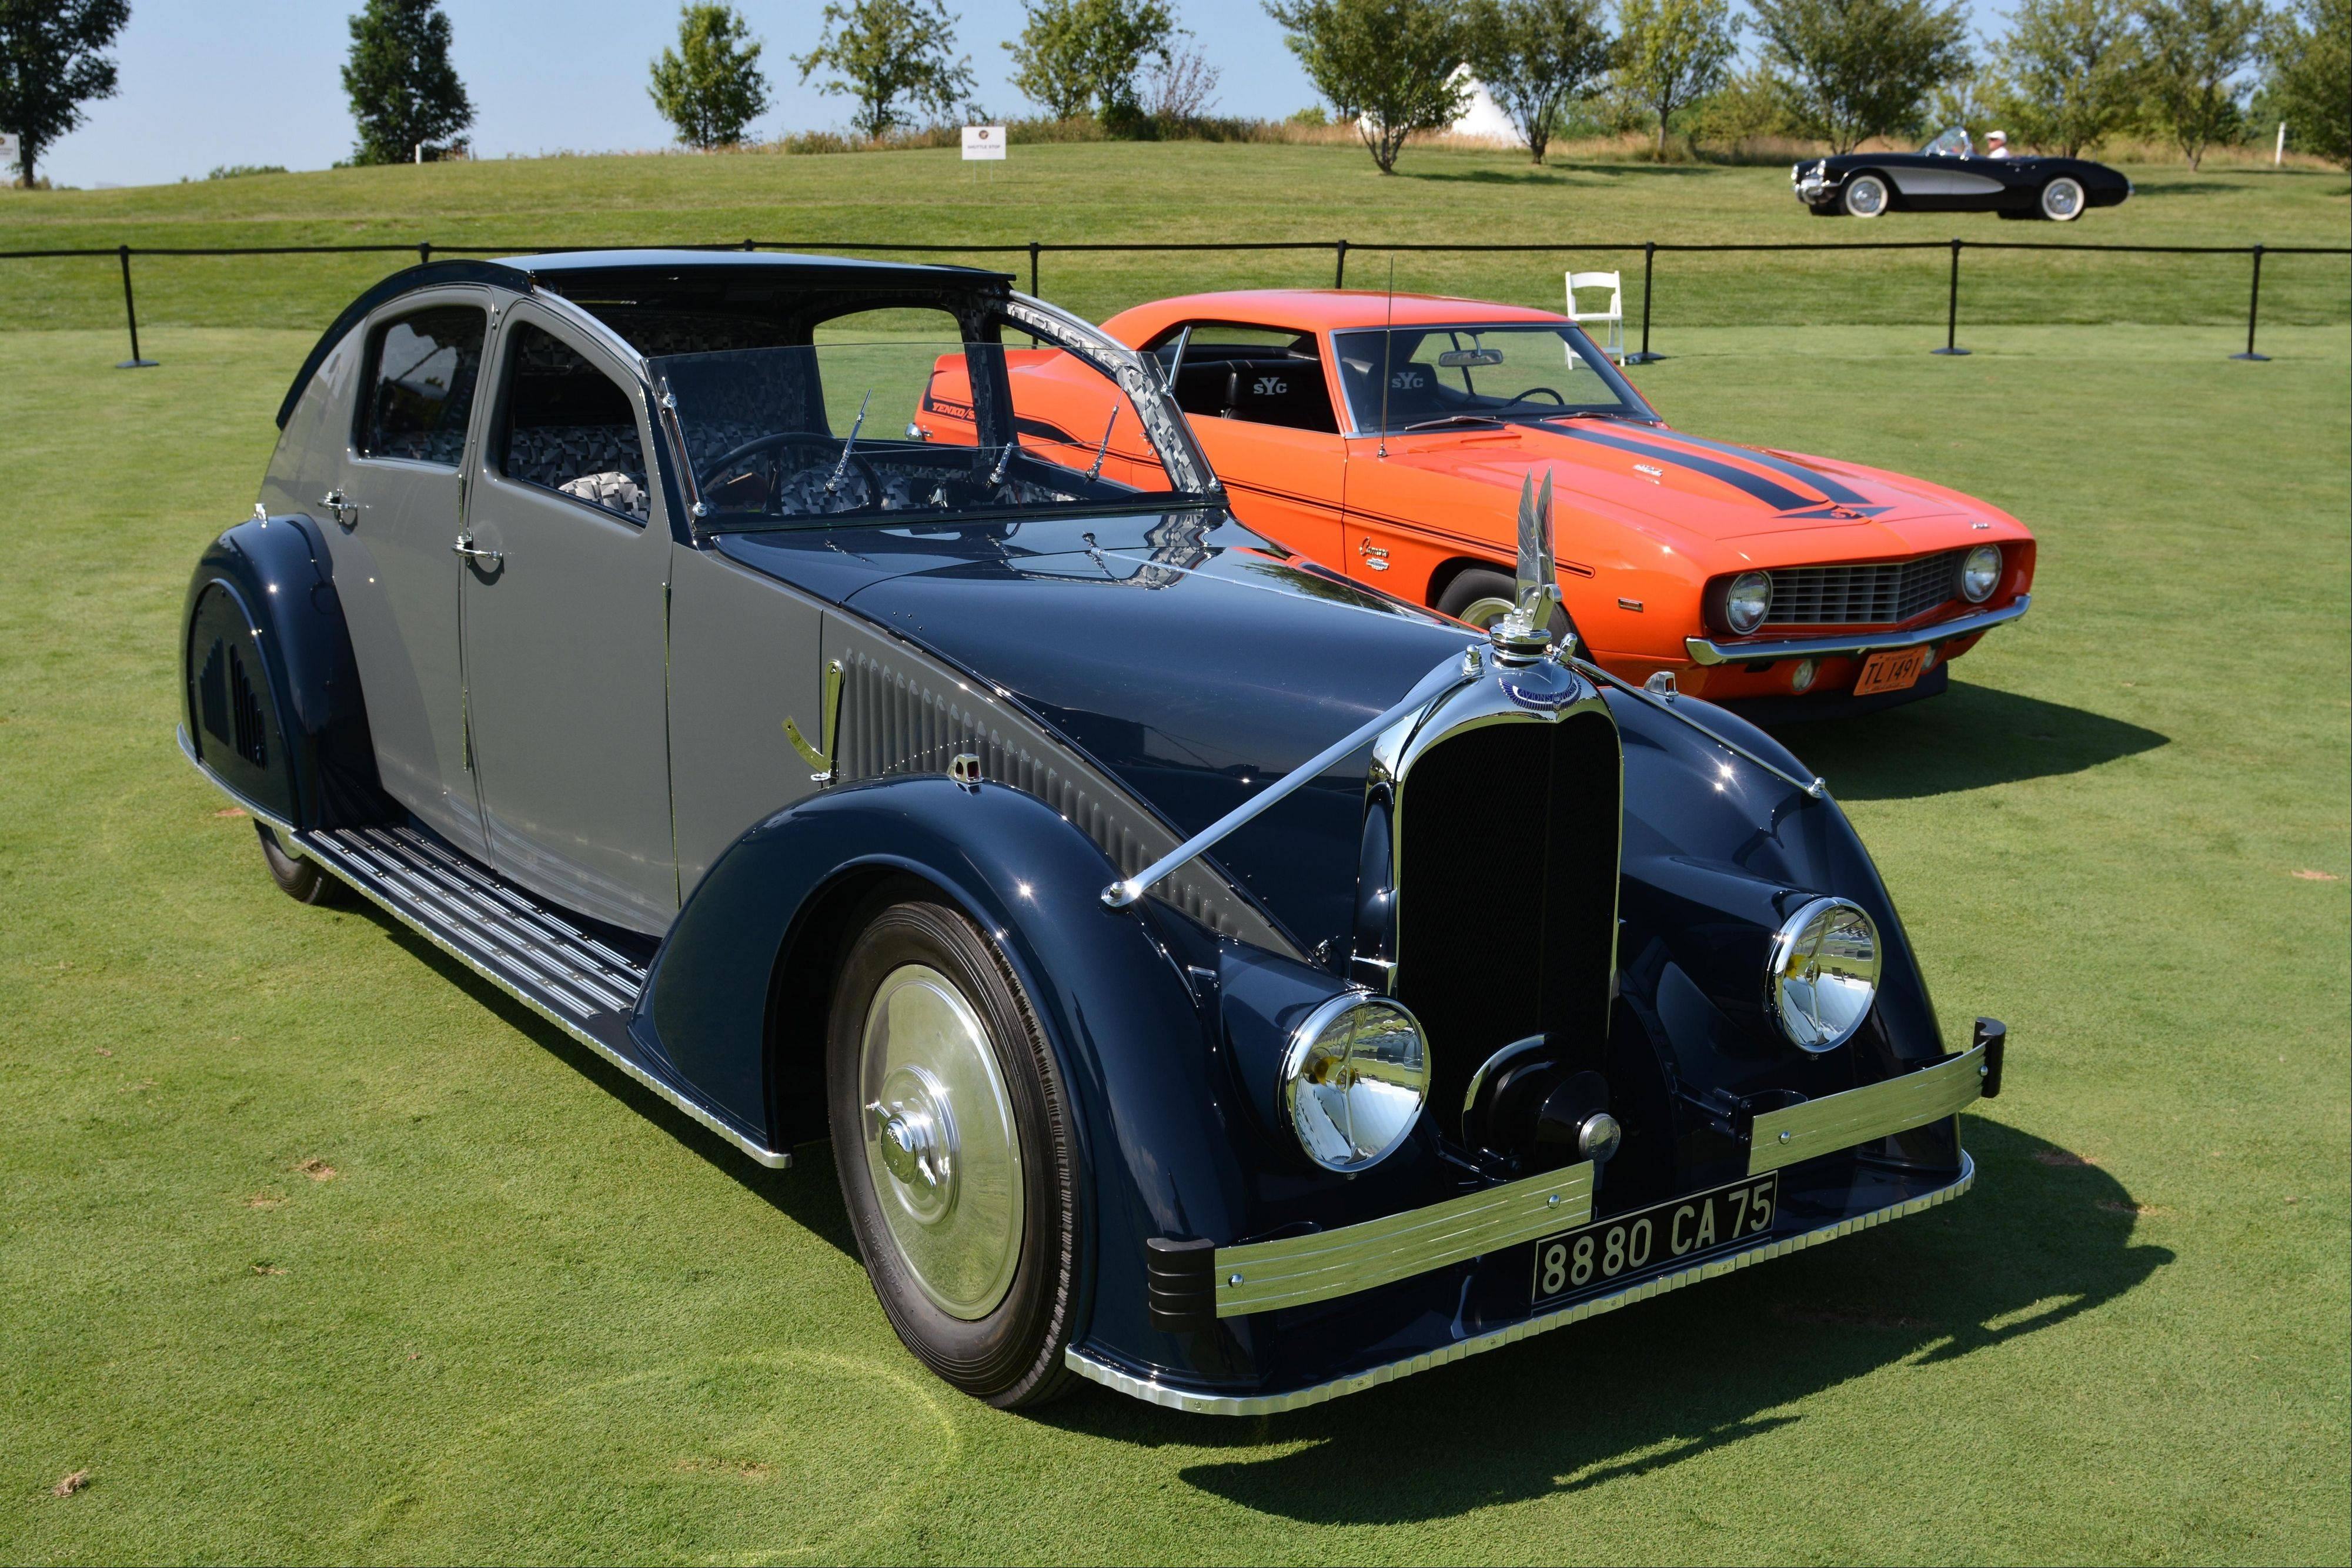 A 1935 Avions Voisin Type C25 Aerodyne, shown in foreground, owned by Peter Mullin of the Mullin Automotive Museum in Oxnard, Calif., earned Best of Show honors.